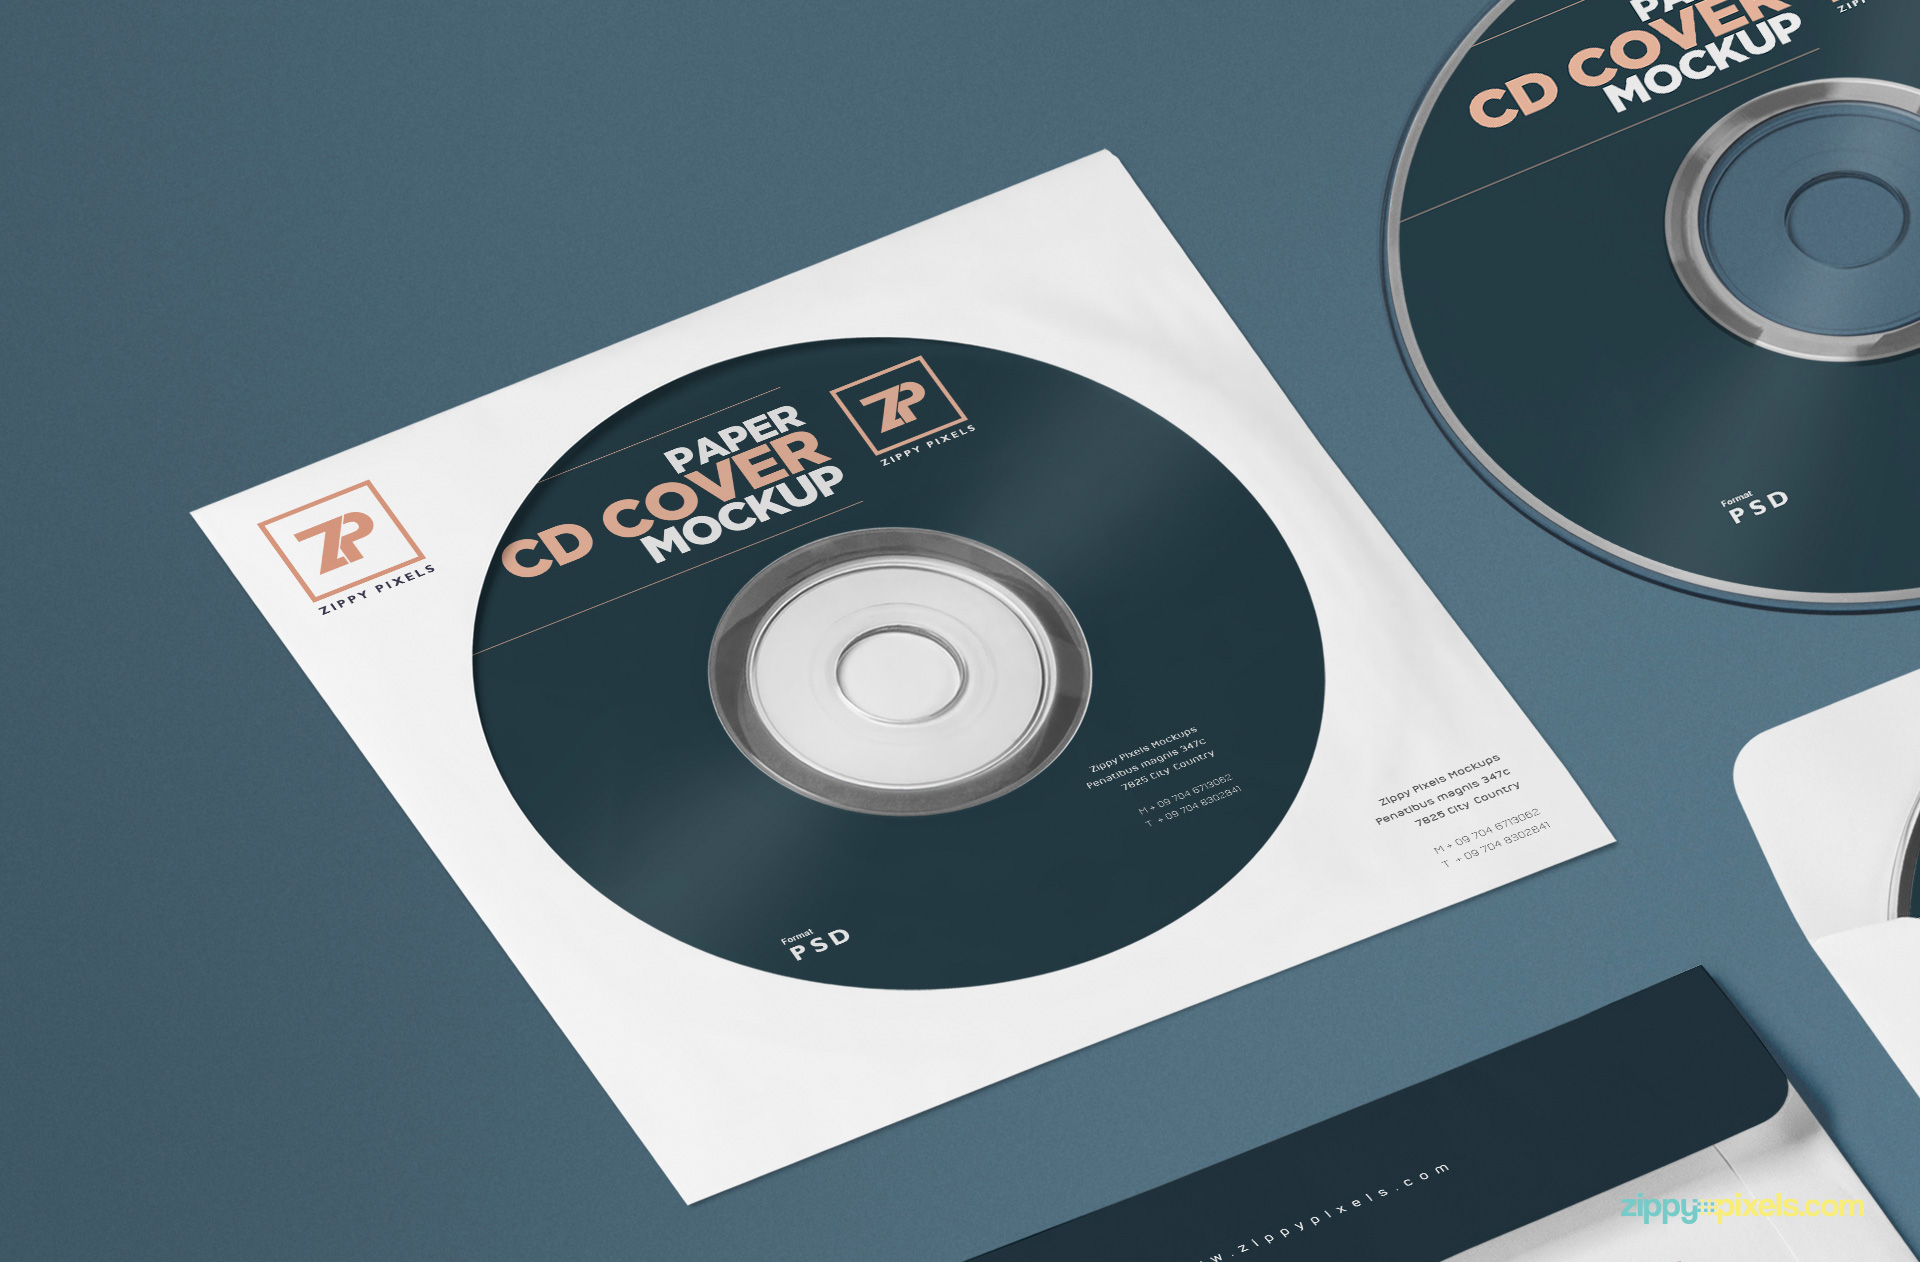 Free cd front label mockup design